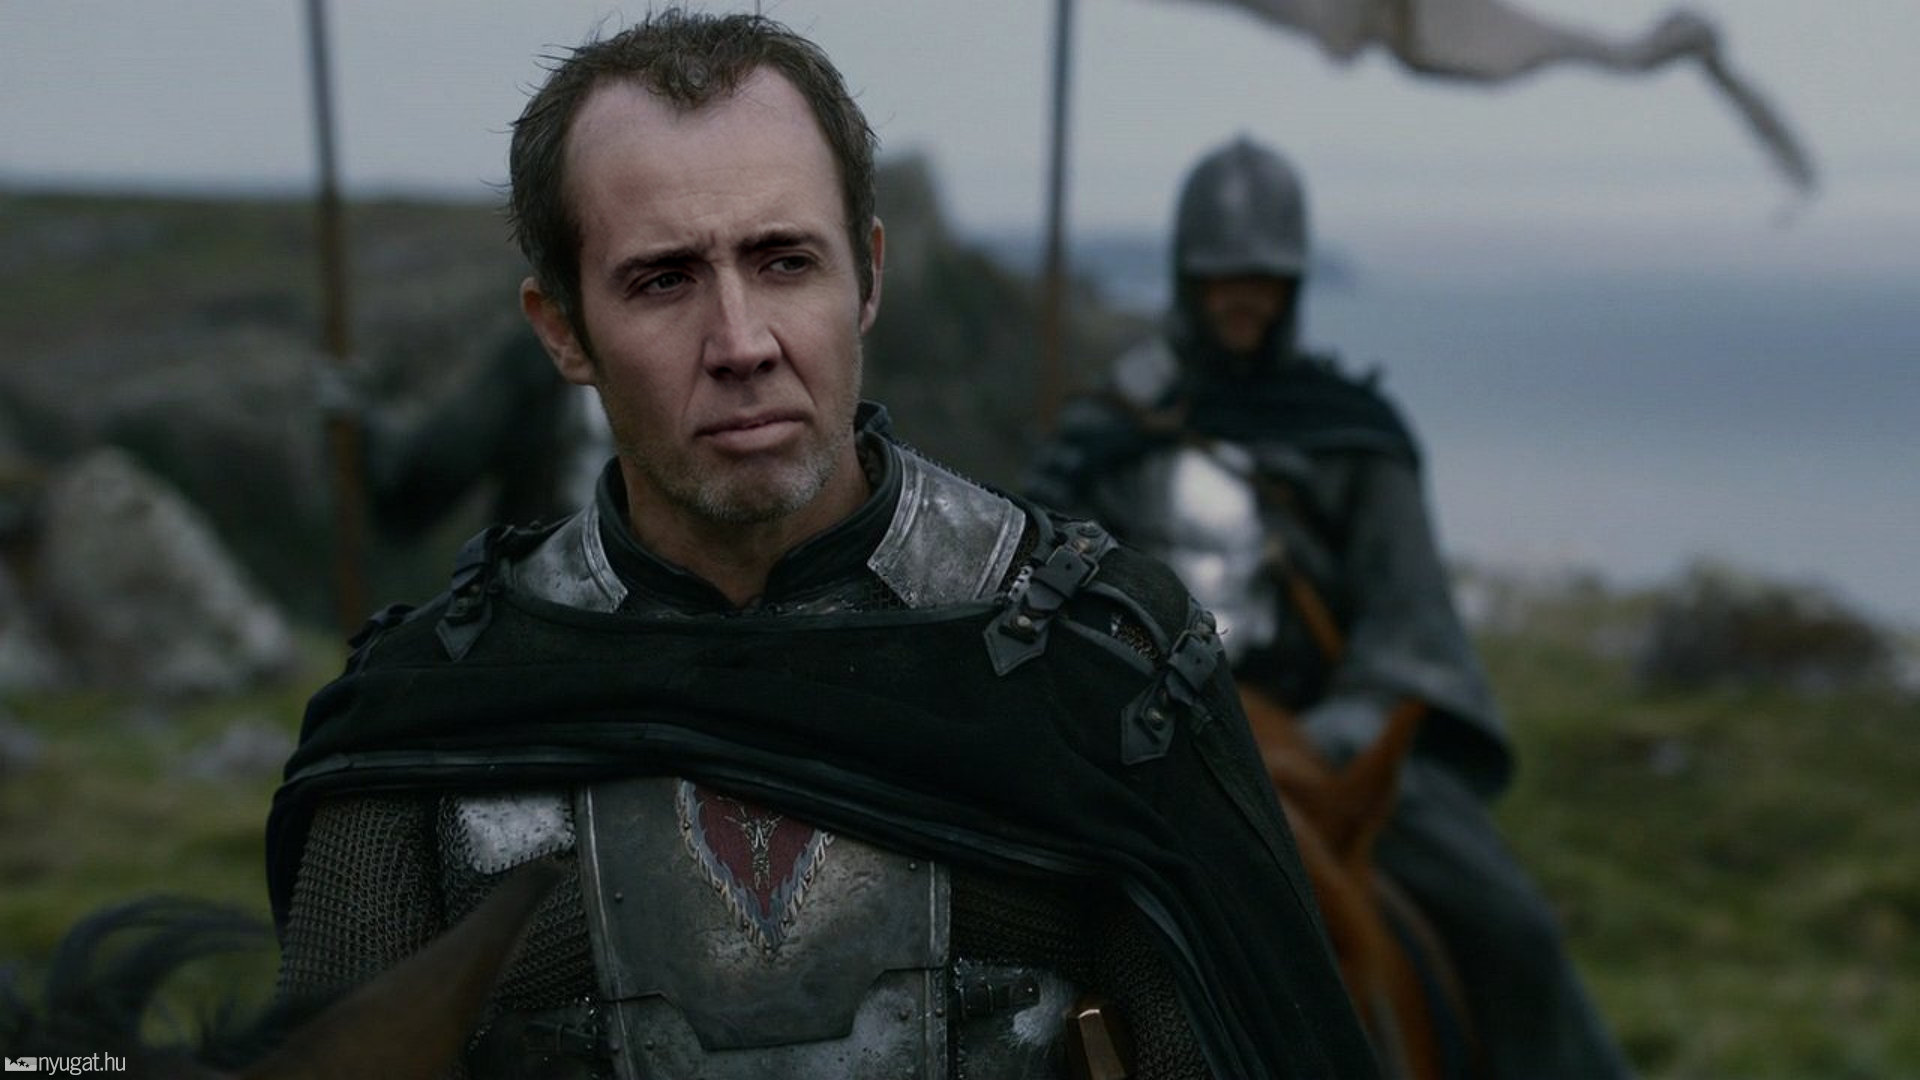 cage of thrones